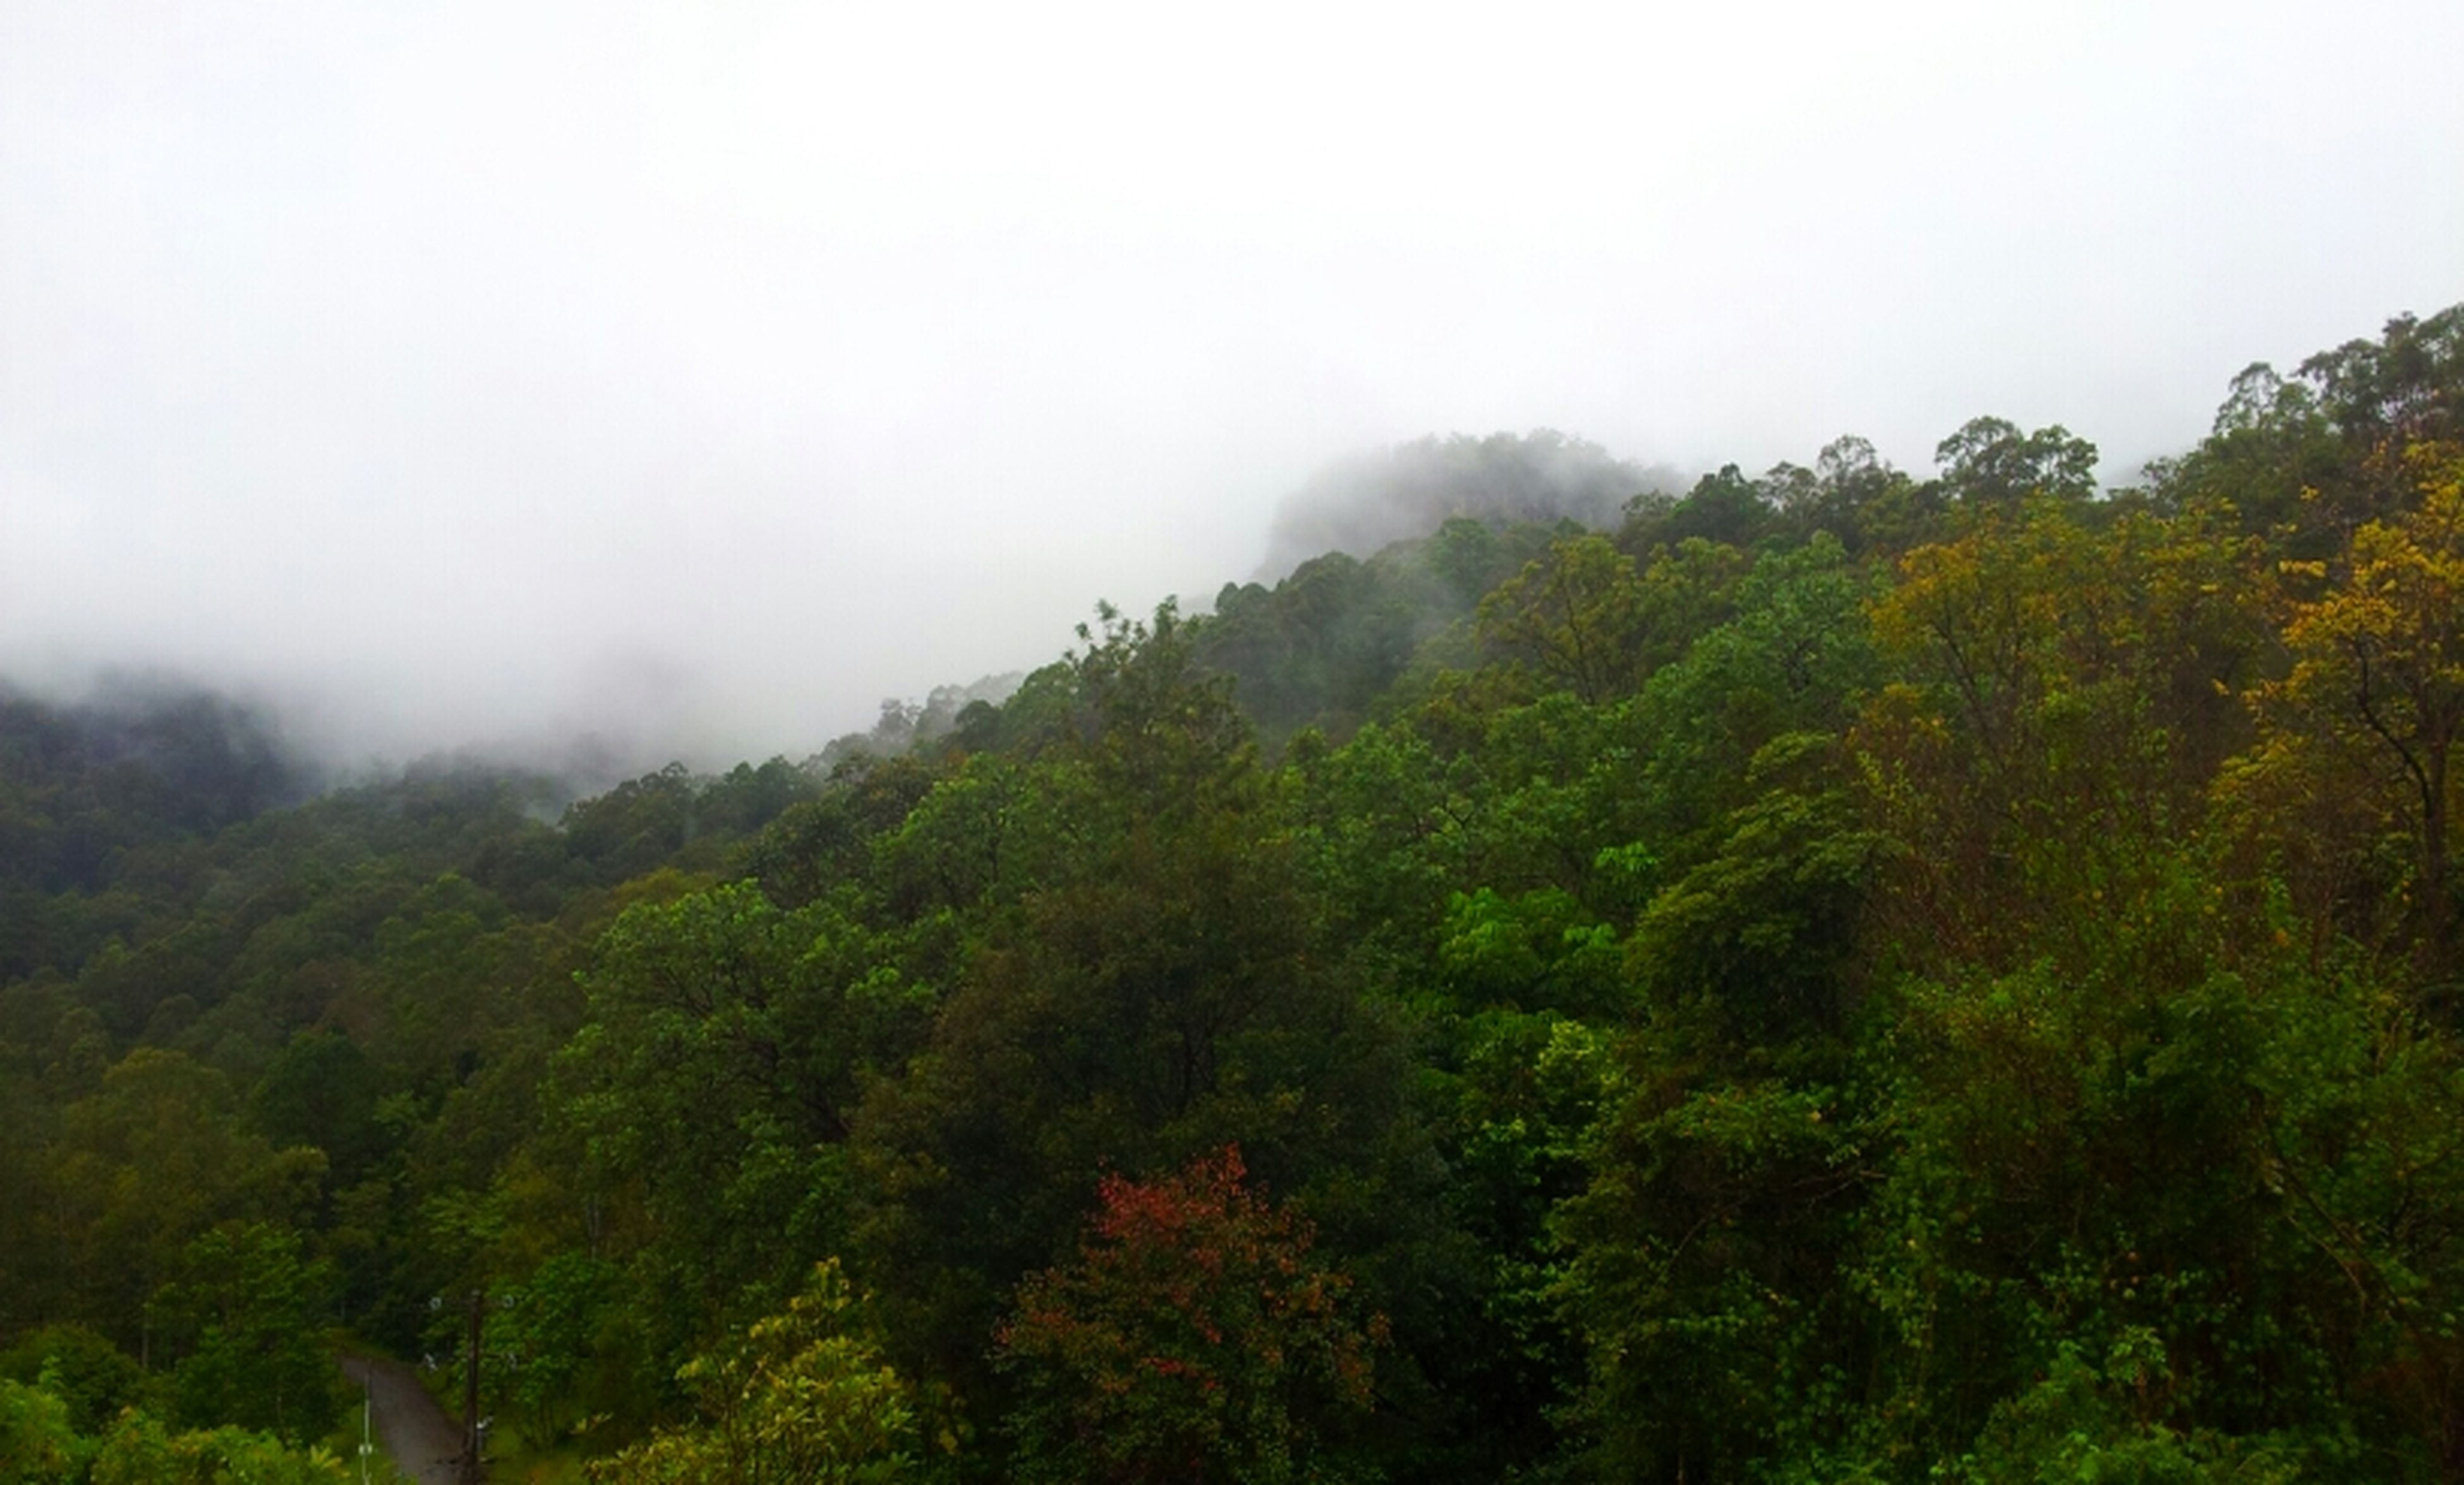 tree, tranquil scene, mountain, tranquility, scenics, beauty in nature, fog, nature, growth, green color, foggy, lush foliage, landscape, non-urban scene, forest, sky, weather, idyllic, day